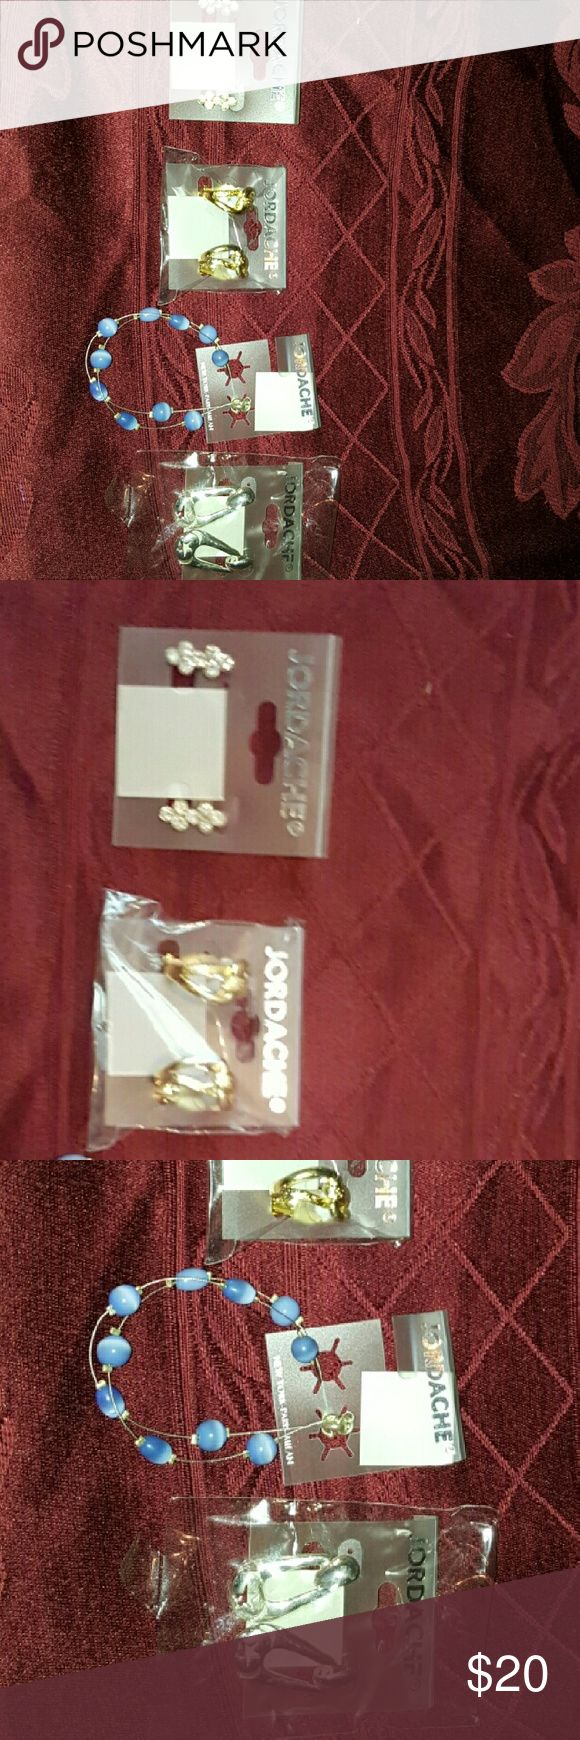 4 packs fashion nice Jordan earrings Brand new never used fundraising for Sara's Inspirational Angels for gifts for sick kids fighting diseases like Hiv aids on Christmas for red ribbon awareness month. All 4 packs for $20 Accessories